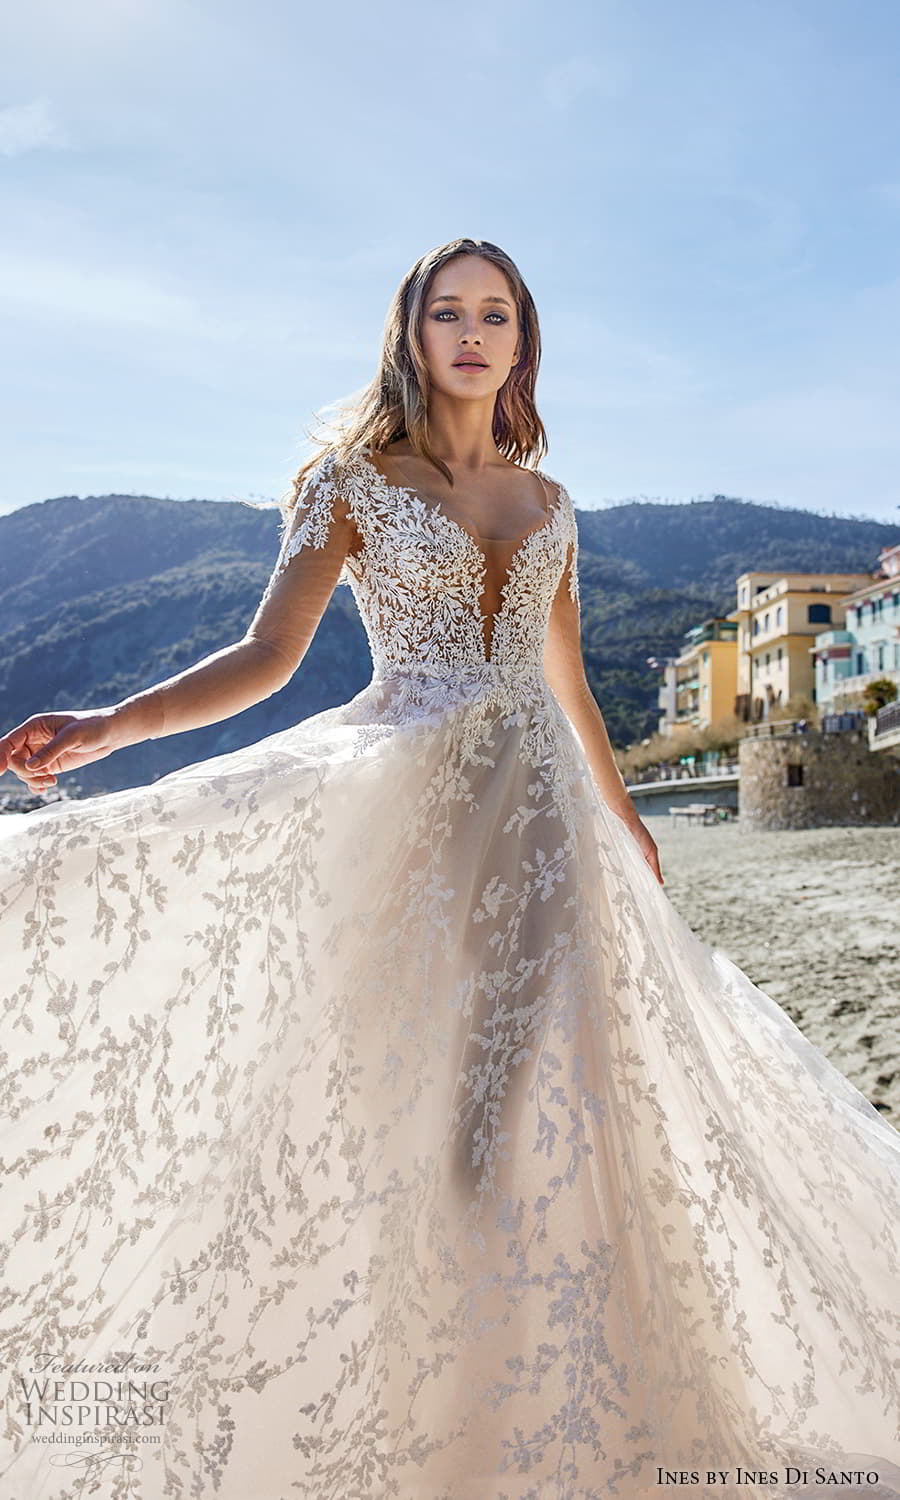 ines ines di santo spring 2022 bridal sheer long sleeves v neckline heavily embellished bodice a line ball gown wedding dress blush (4) zv